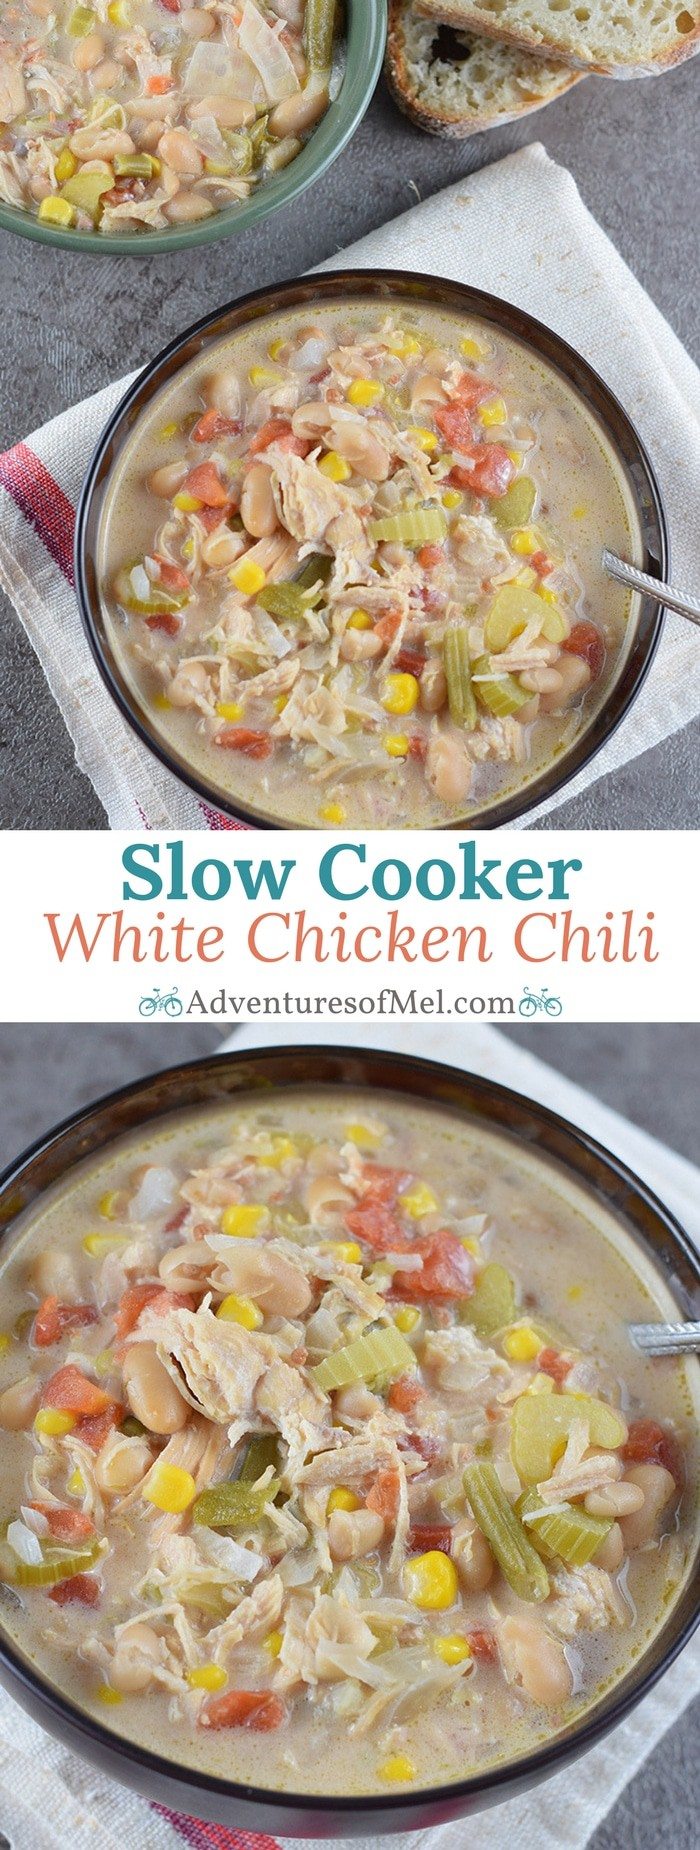 White Chicken Chili in the slow cooker (or Instant Pot) makes an easy family meal. Filled with vegetables, white beans, chicken, green chiles, and cheese.